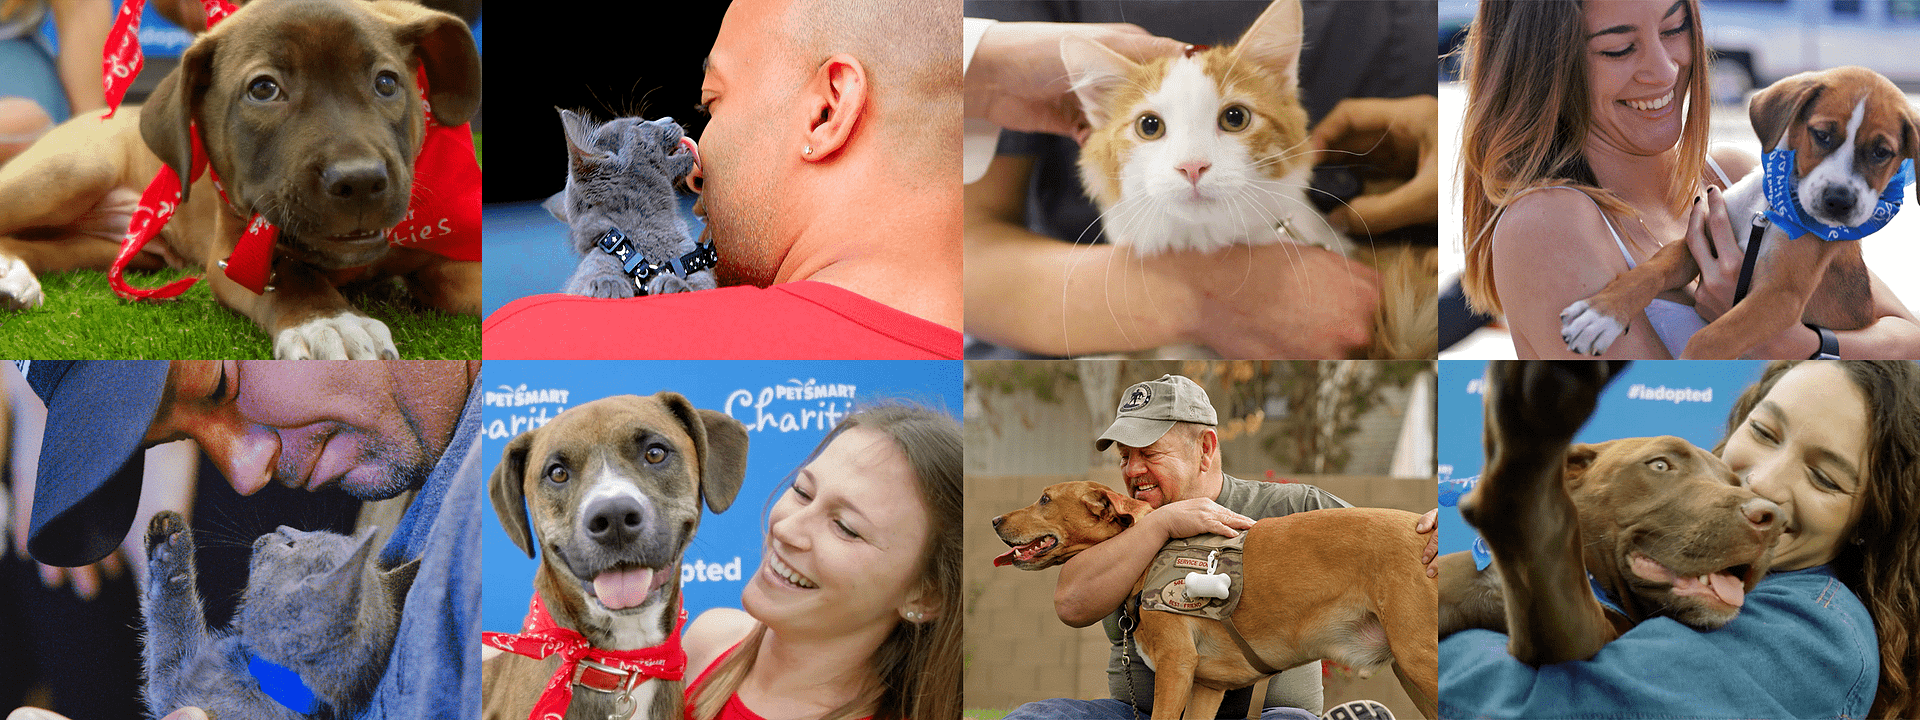 a tiled image of people interacting with pets at petsmart charities adoption events